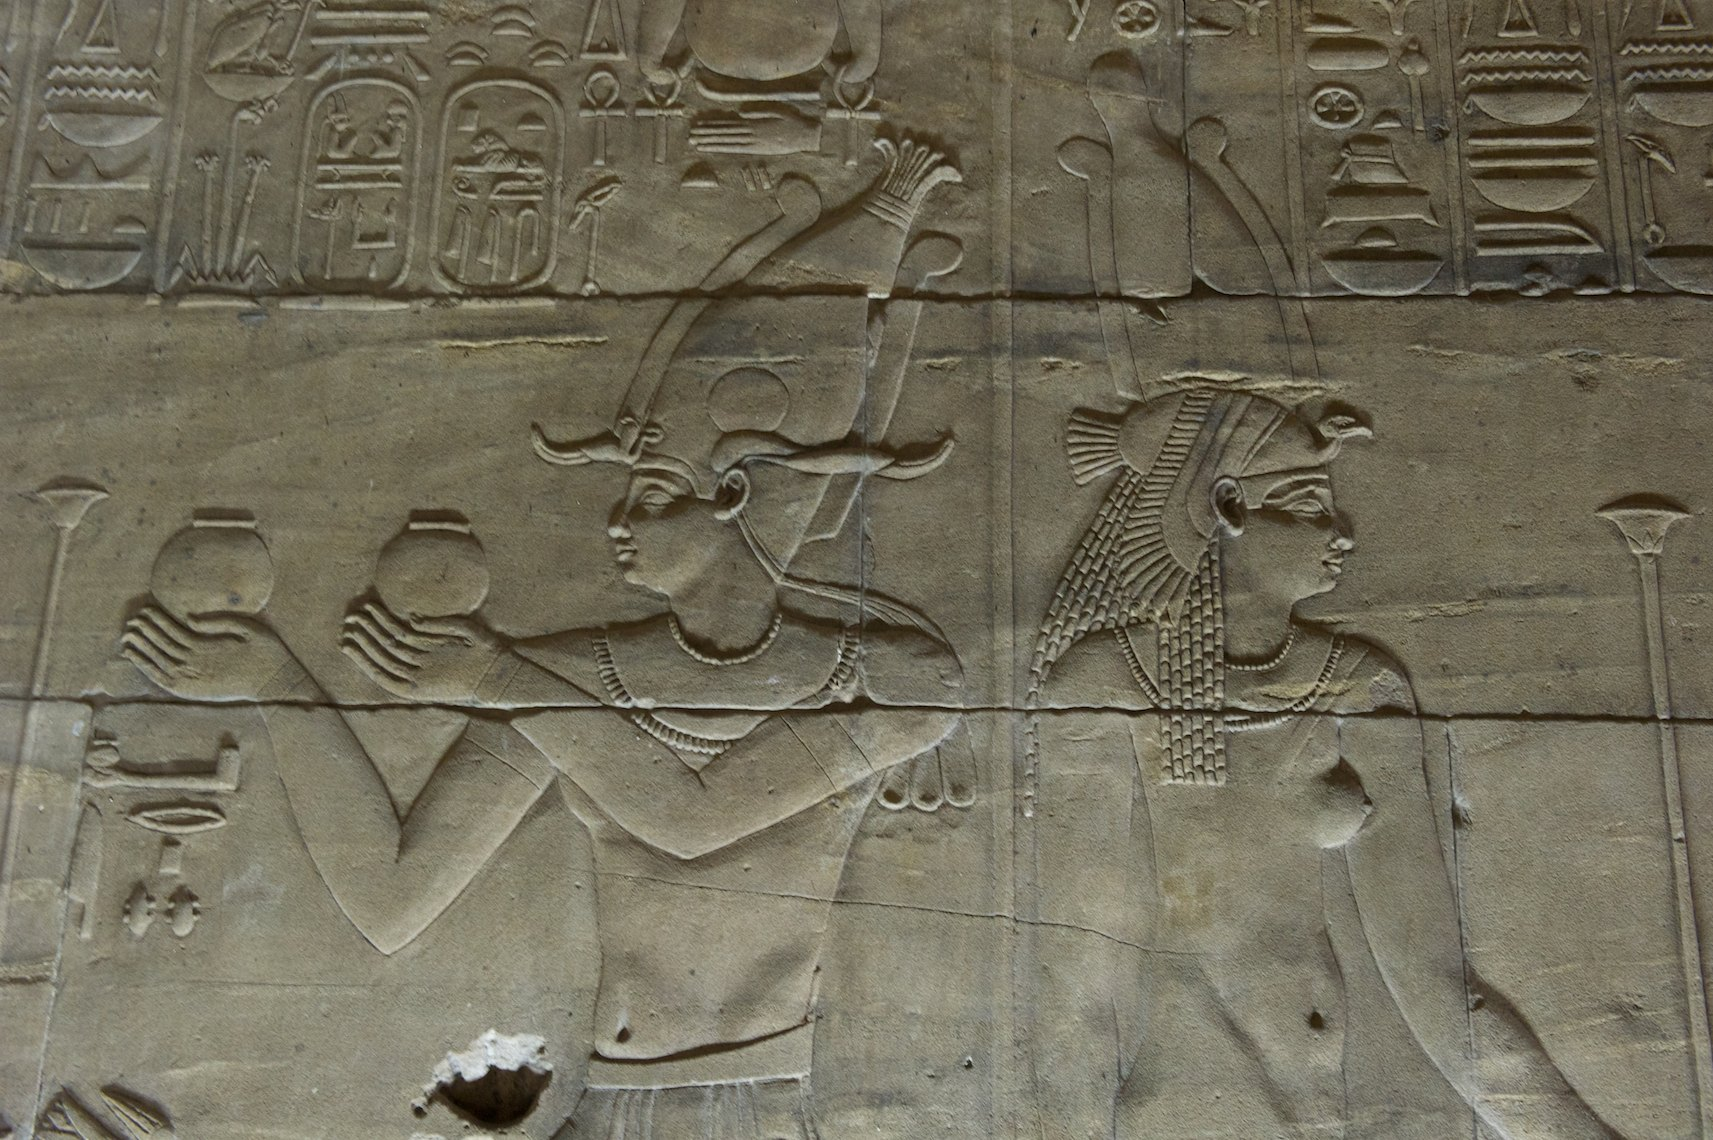 Barth_Egypt_temple 002.jpg